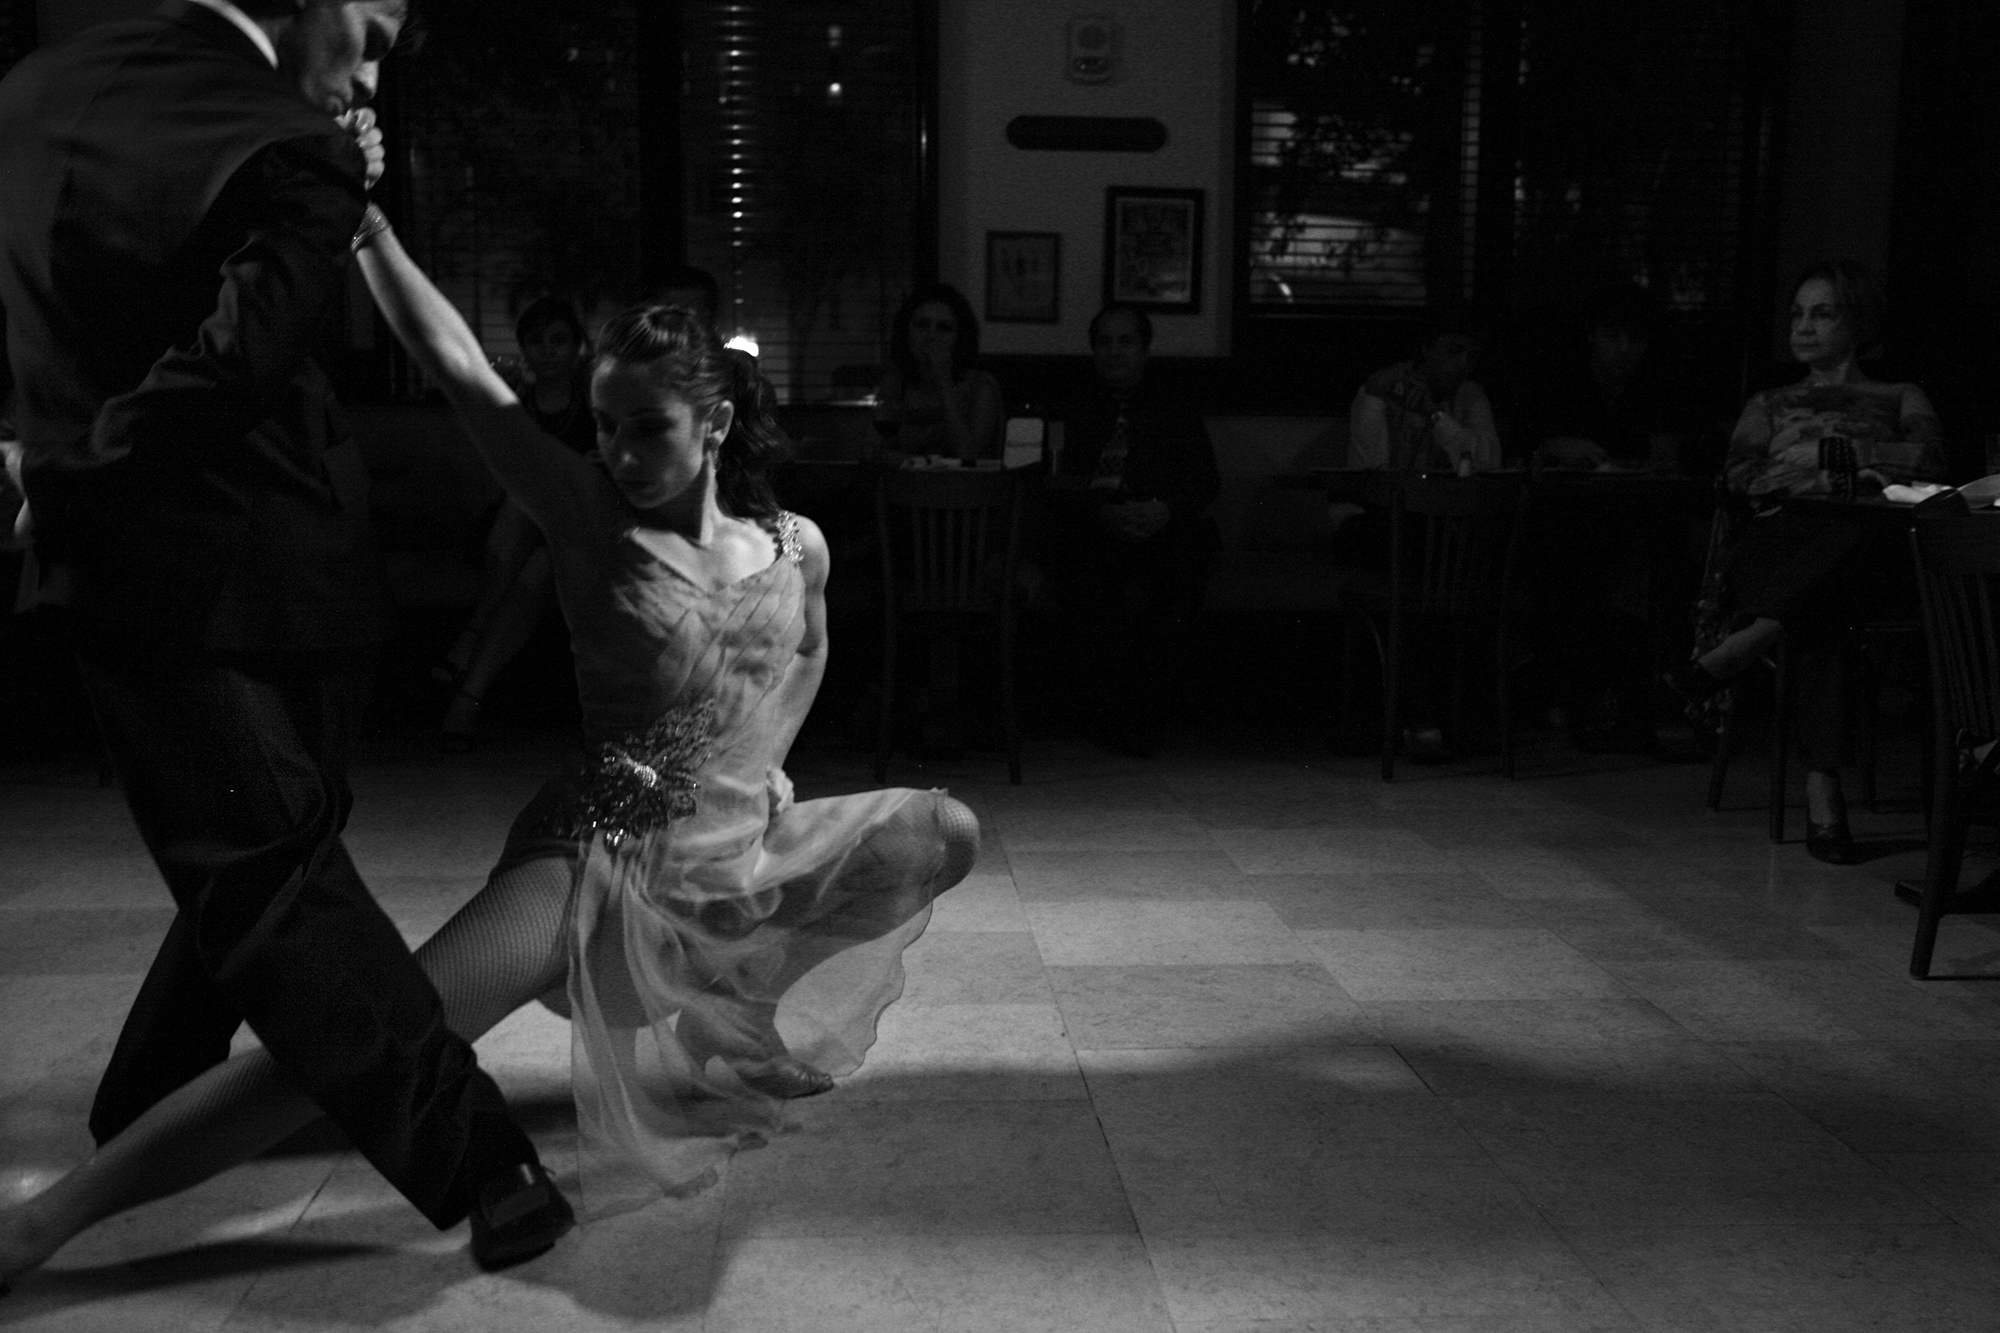 Ana Padron and Diego Blanco discuss community building and the healing powers of Argentine tango